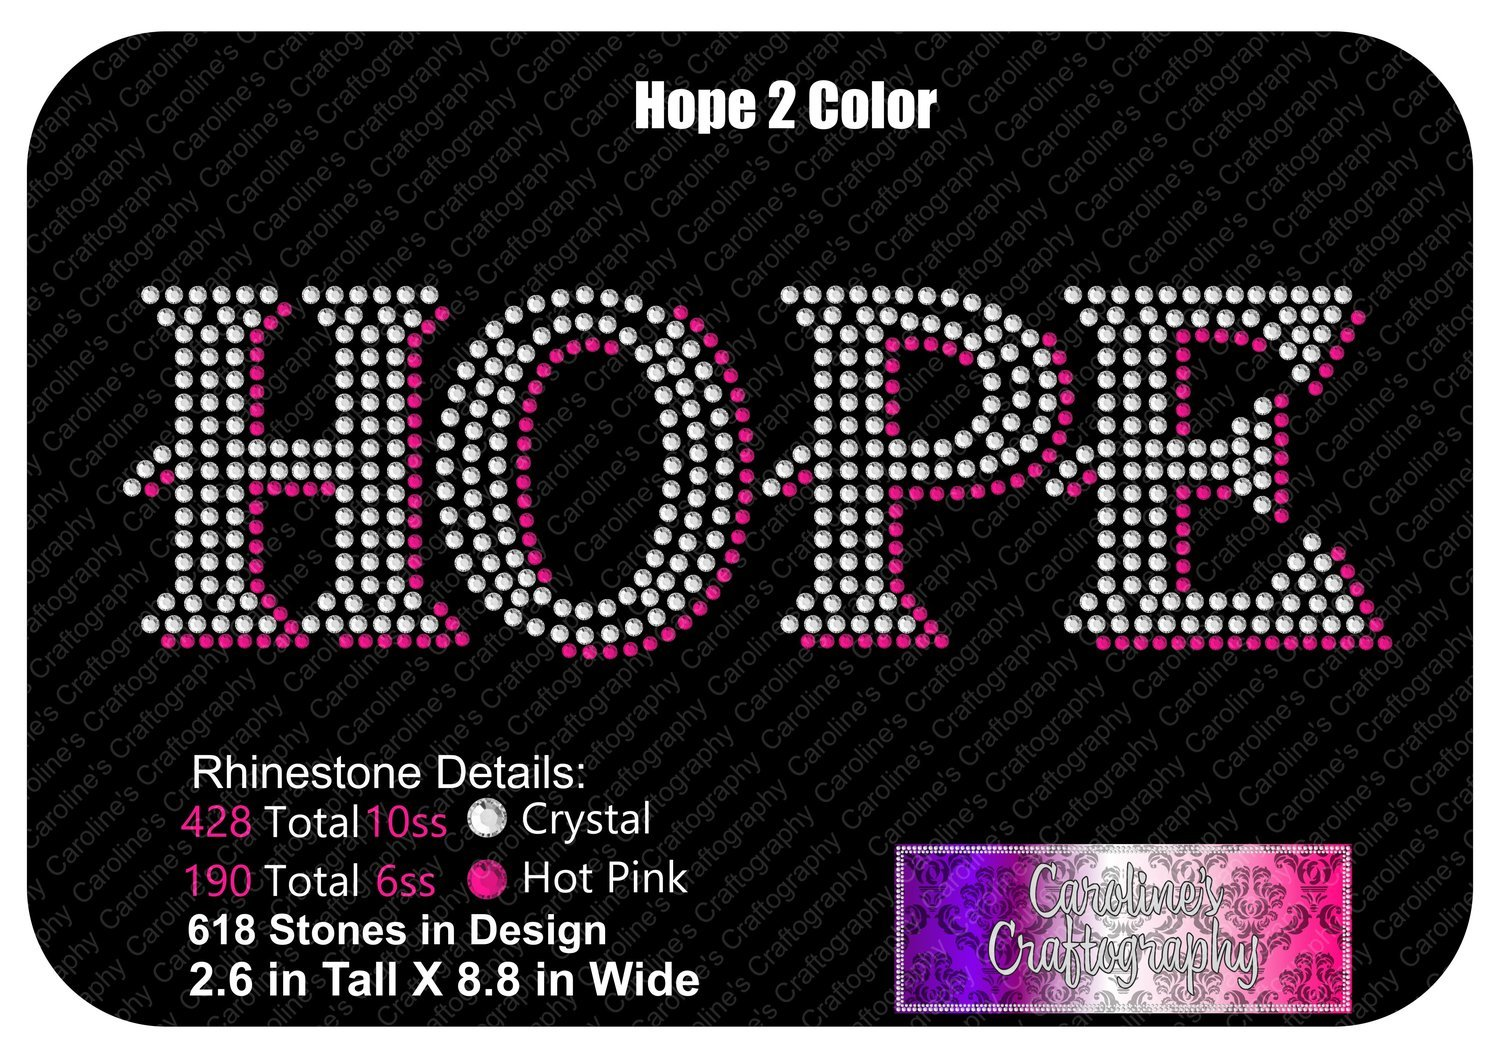 Hope 2 Color Stone